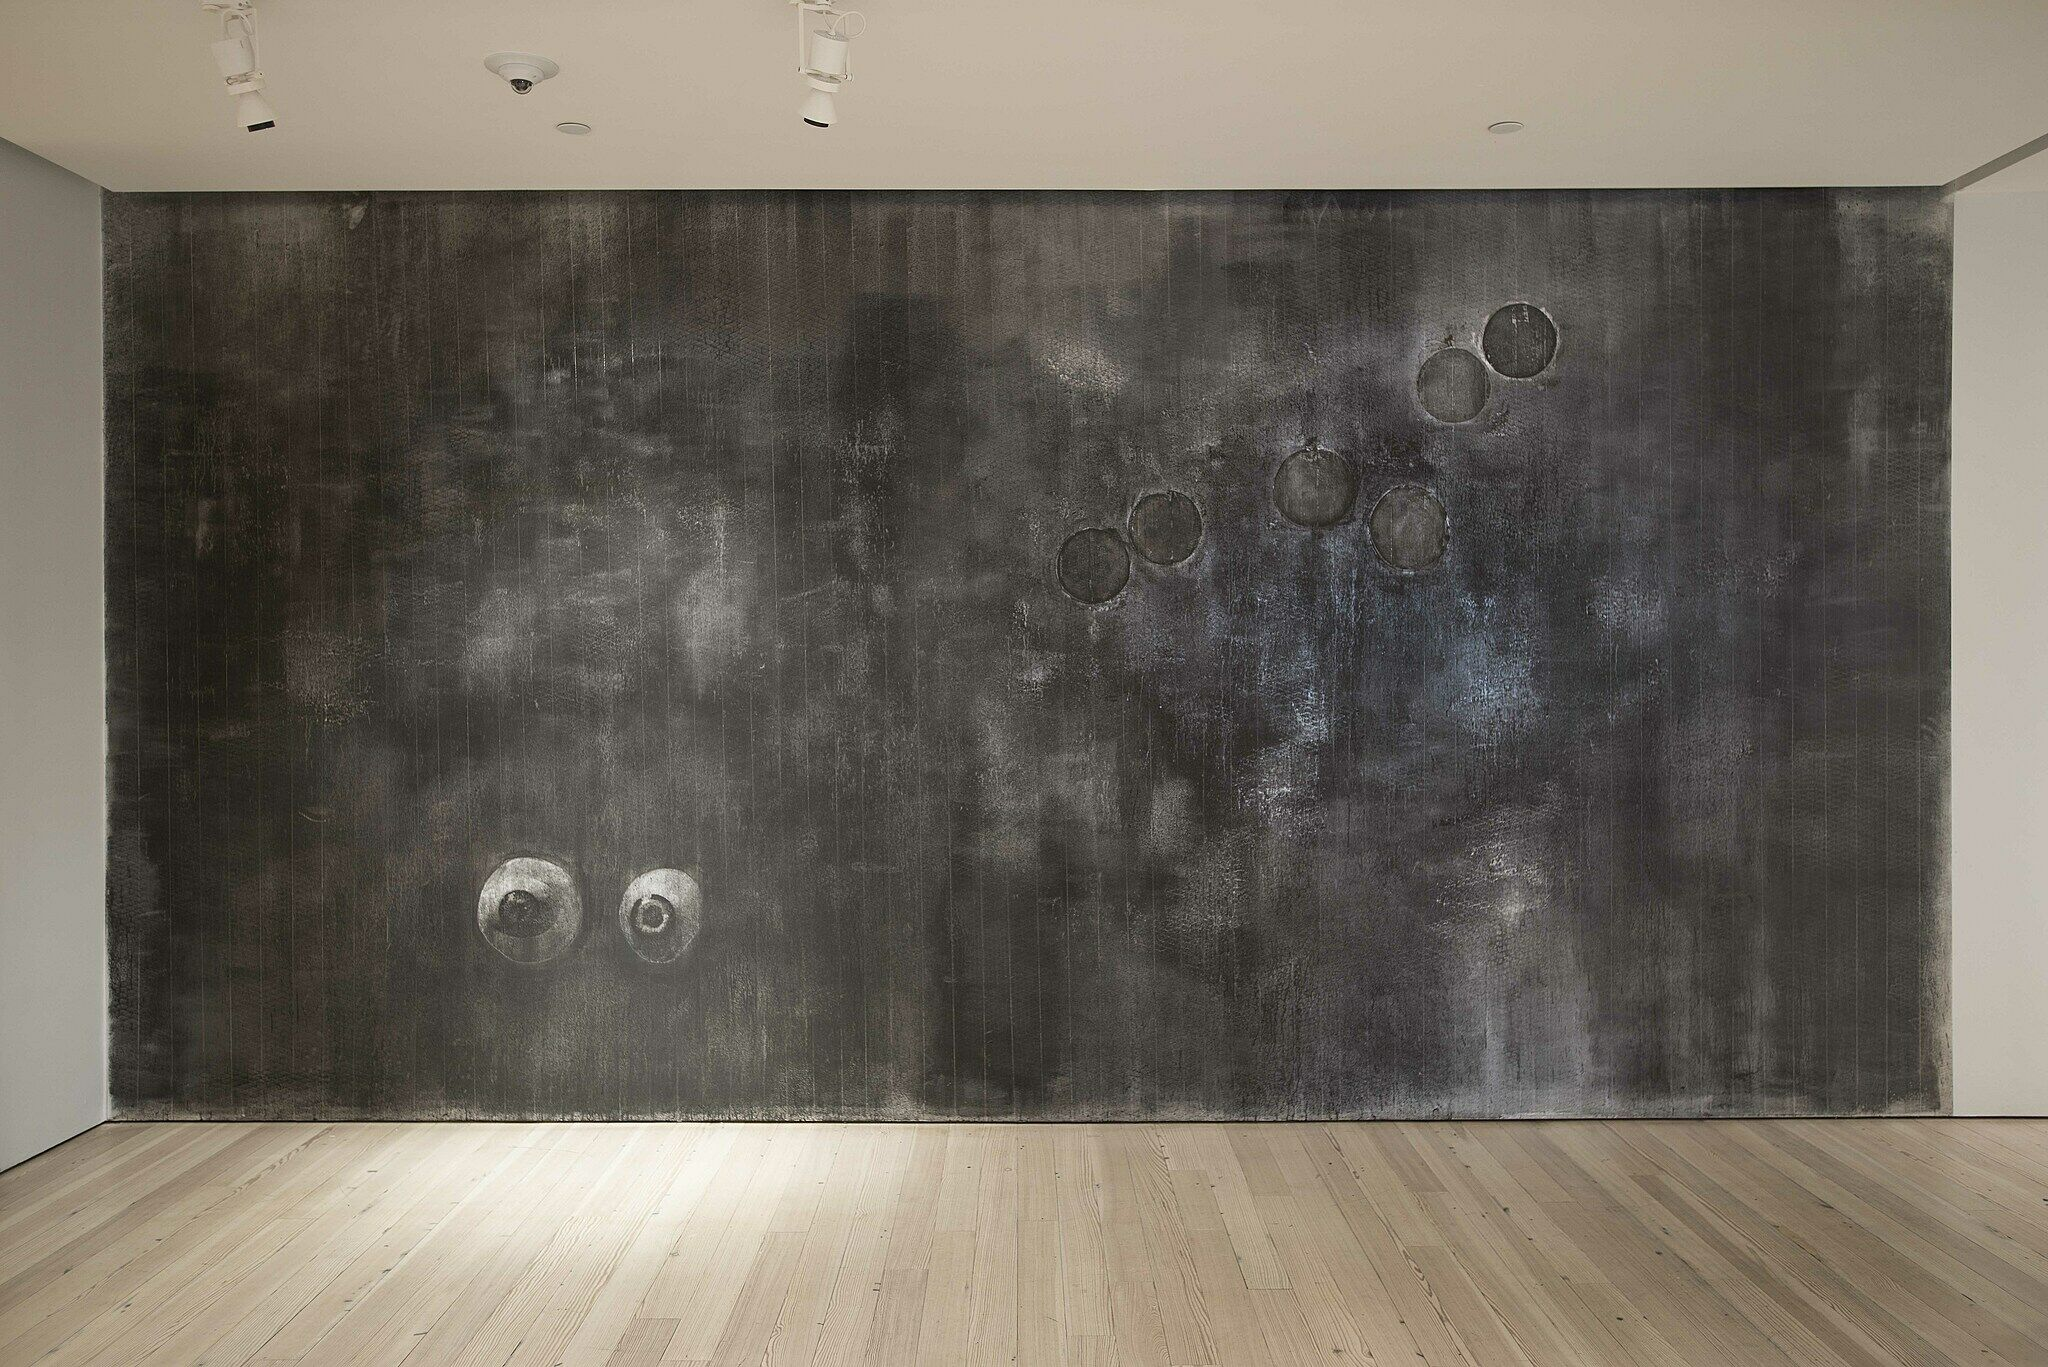 Gray textured wall with two eyes.